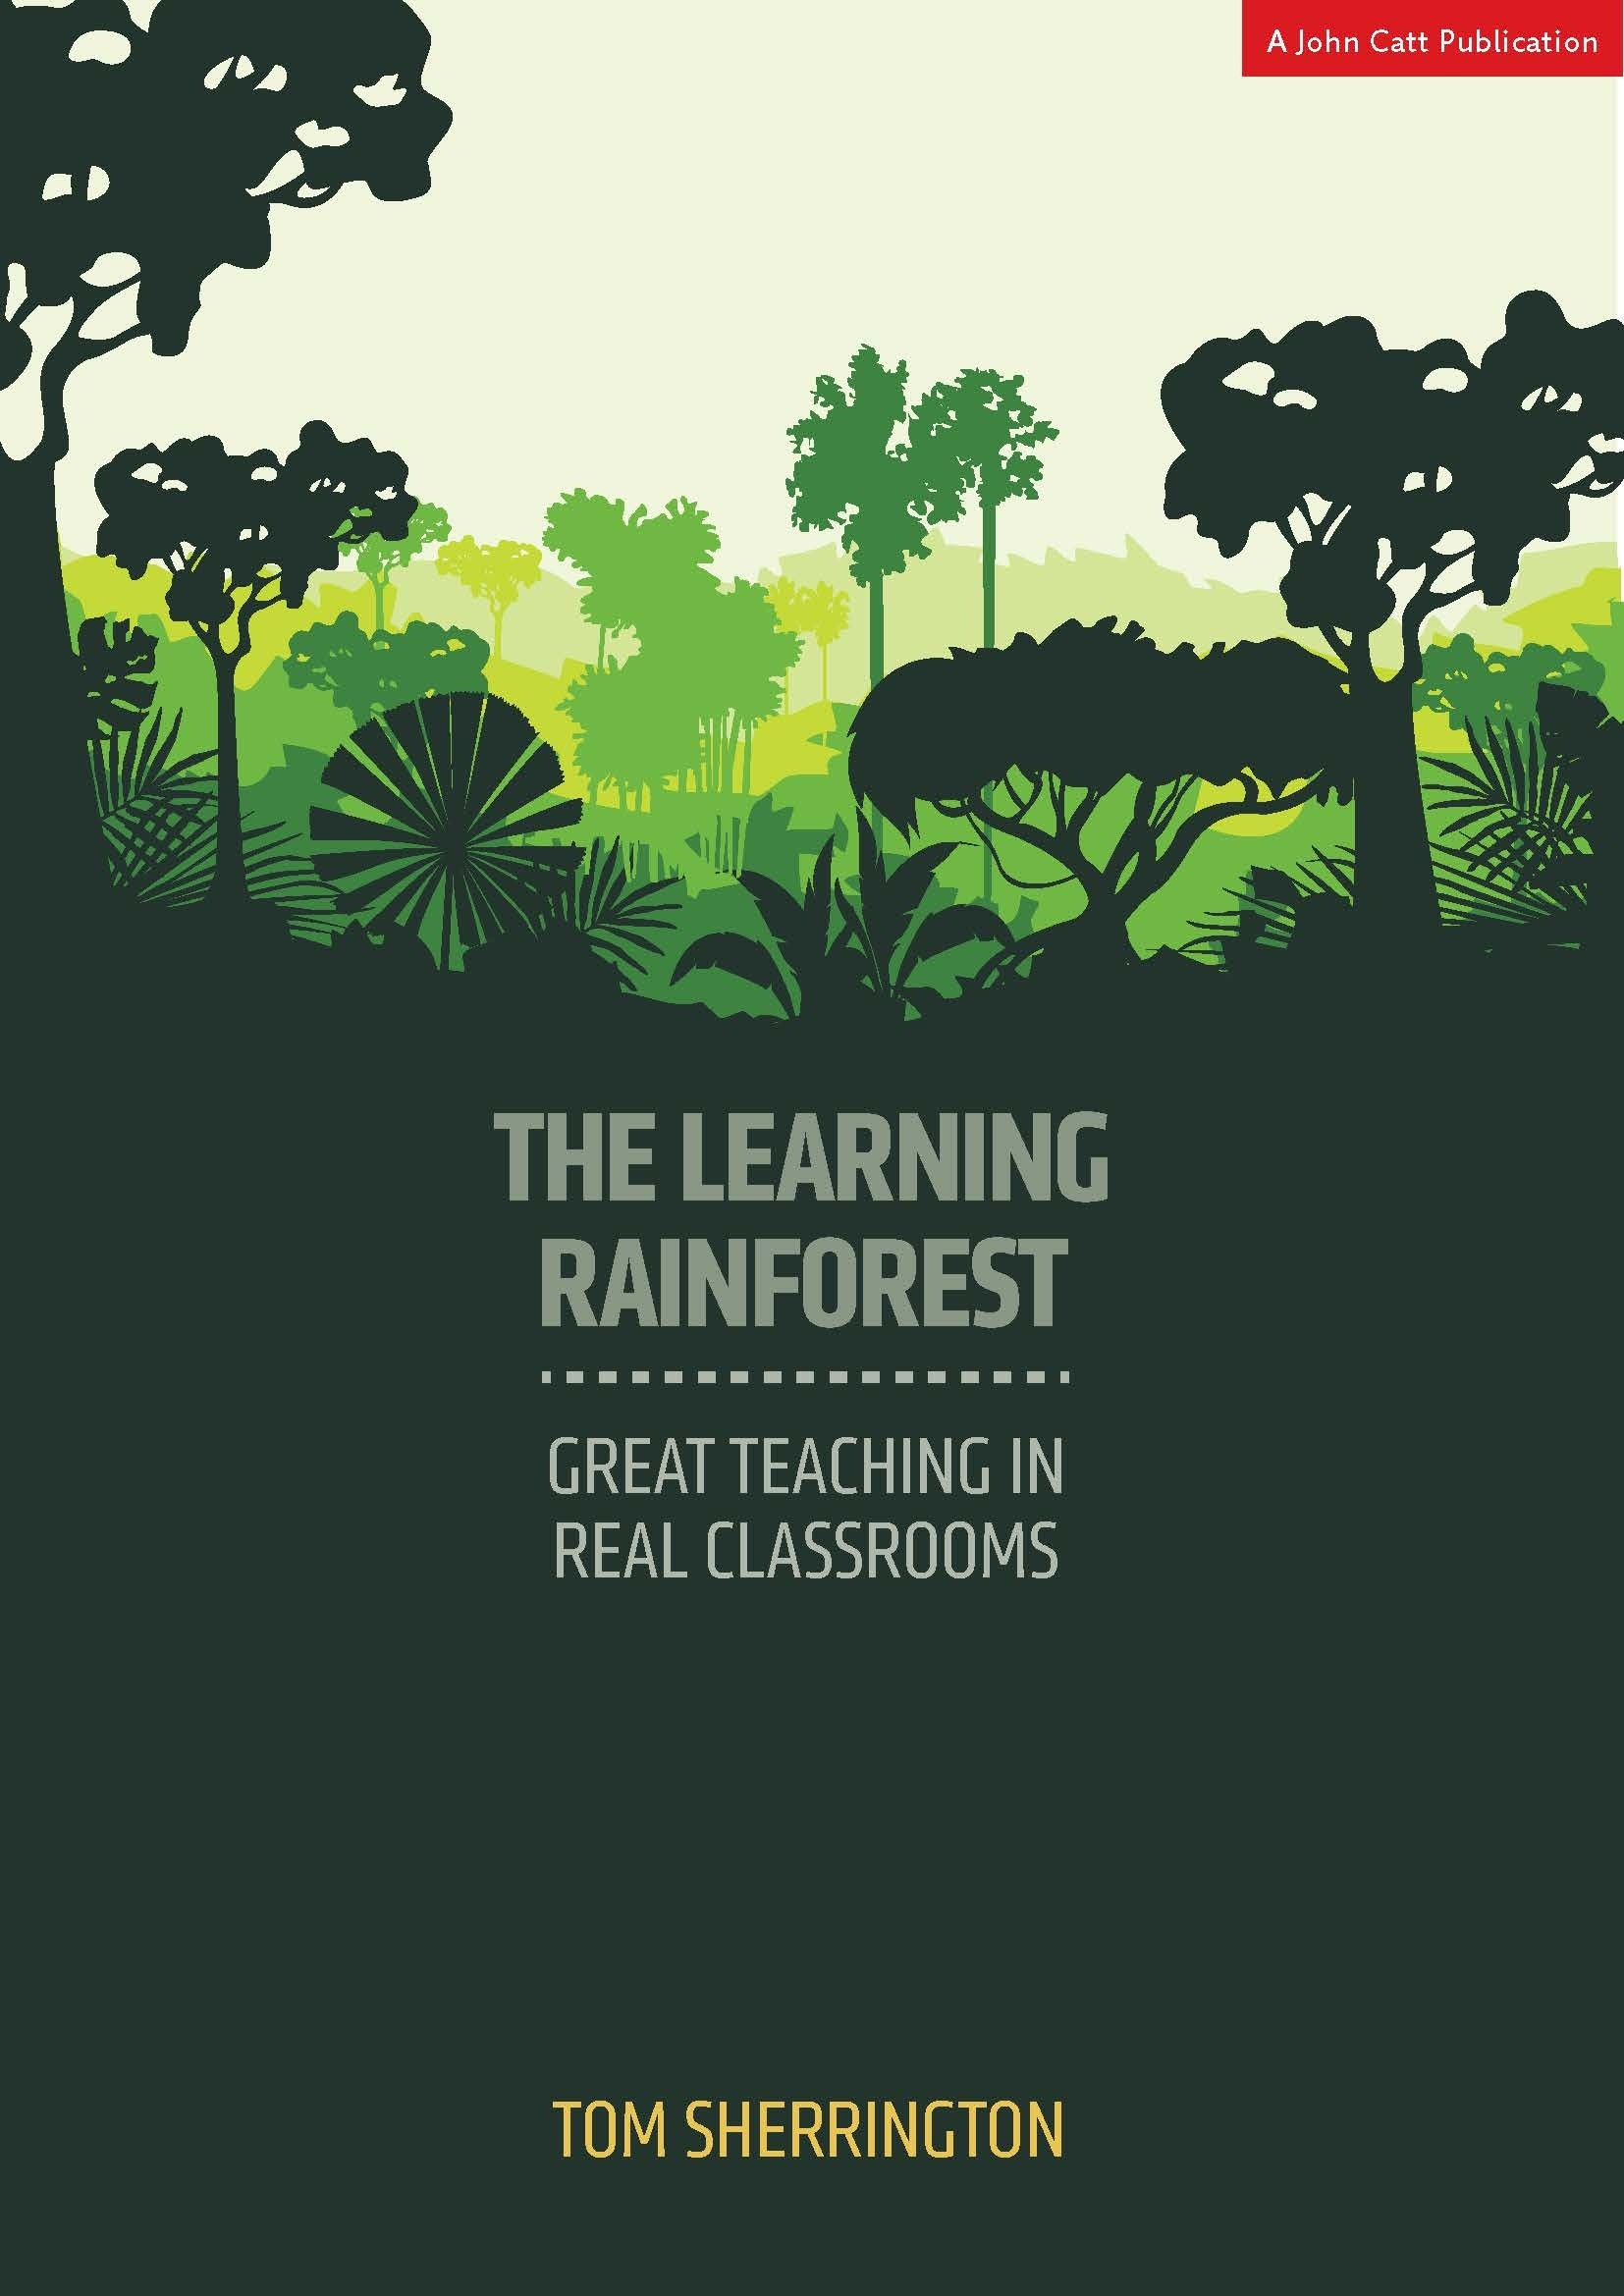 the learning rainforest great teaching in real classrooms